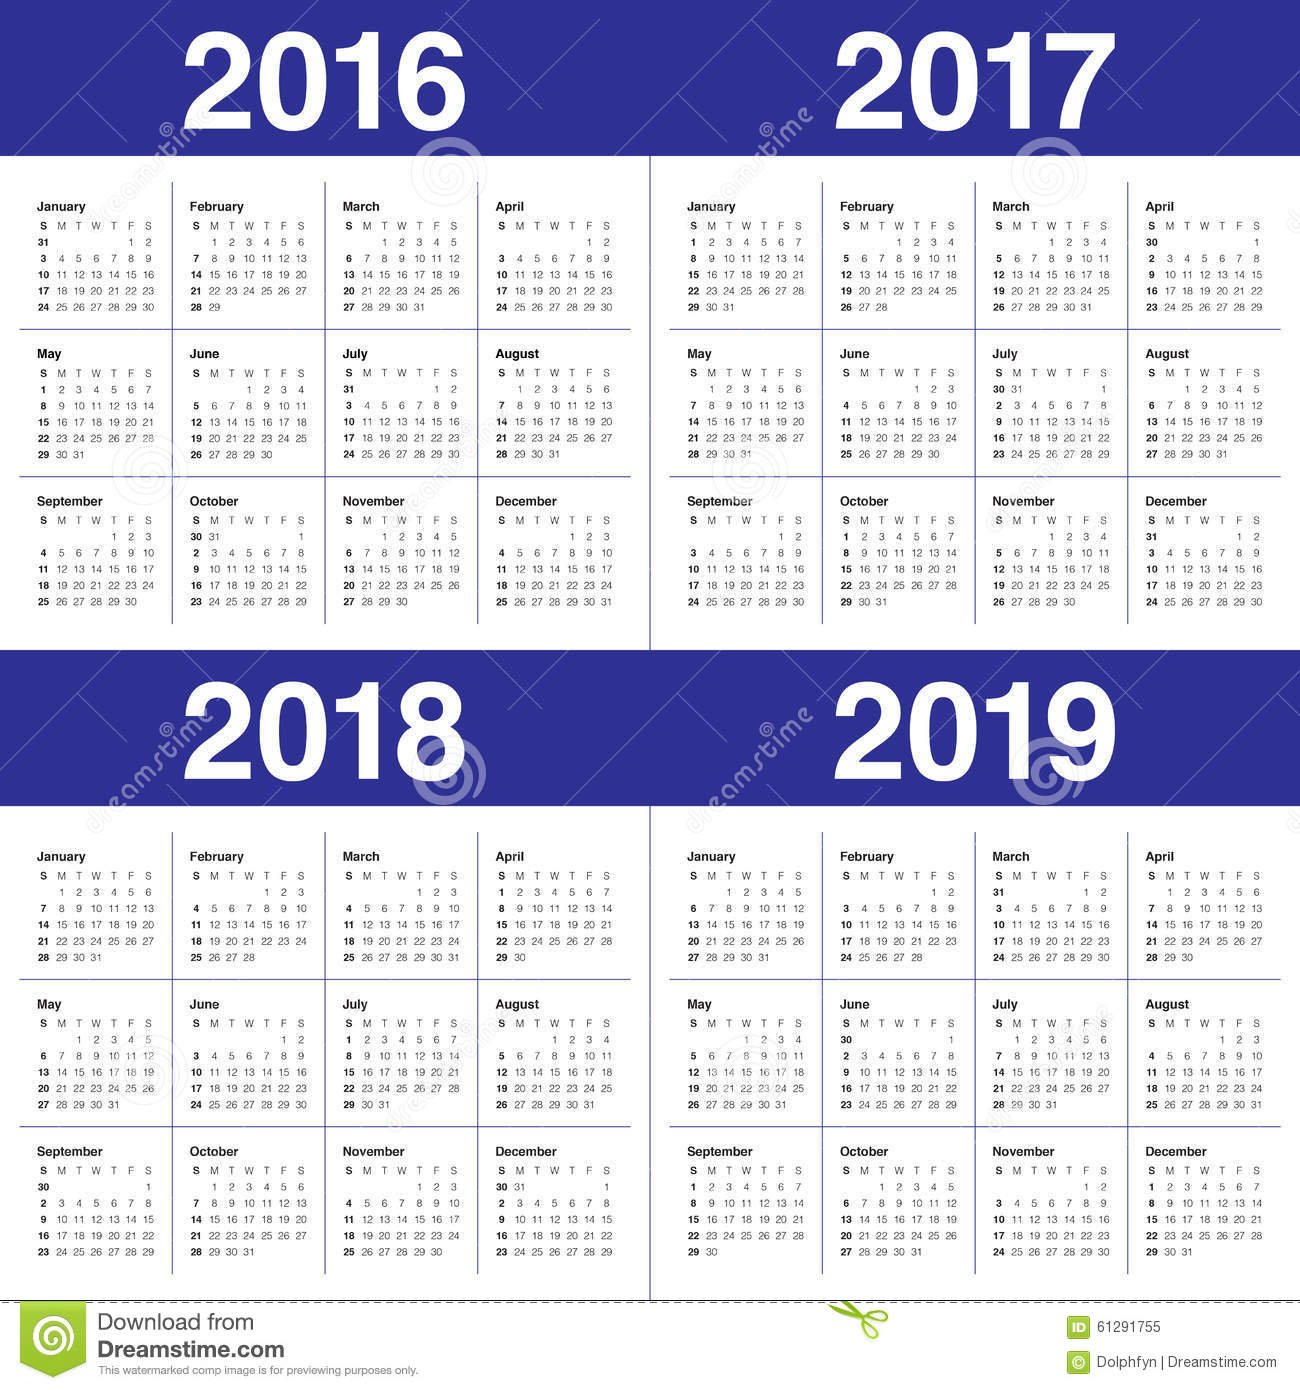 2019 2016 2019 Calendar Calendar 2016 2017 2018 2019 Stock Vector   Illustration of simple